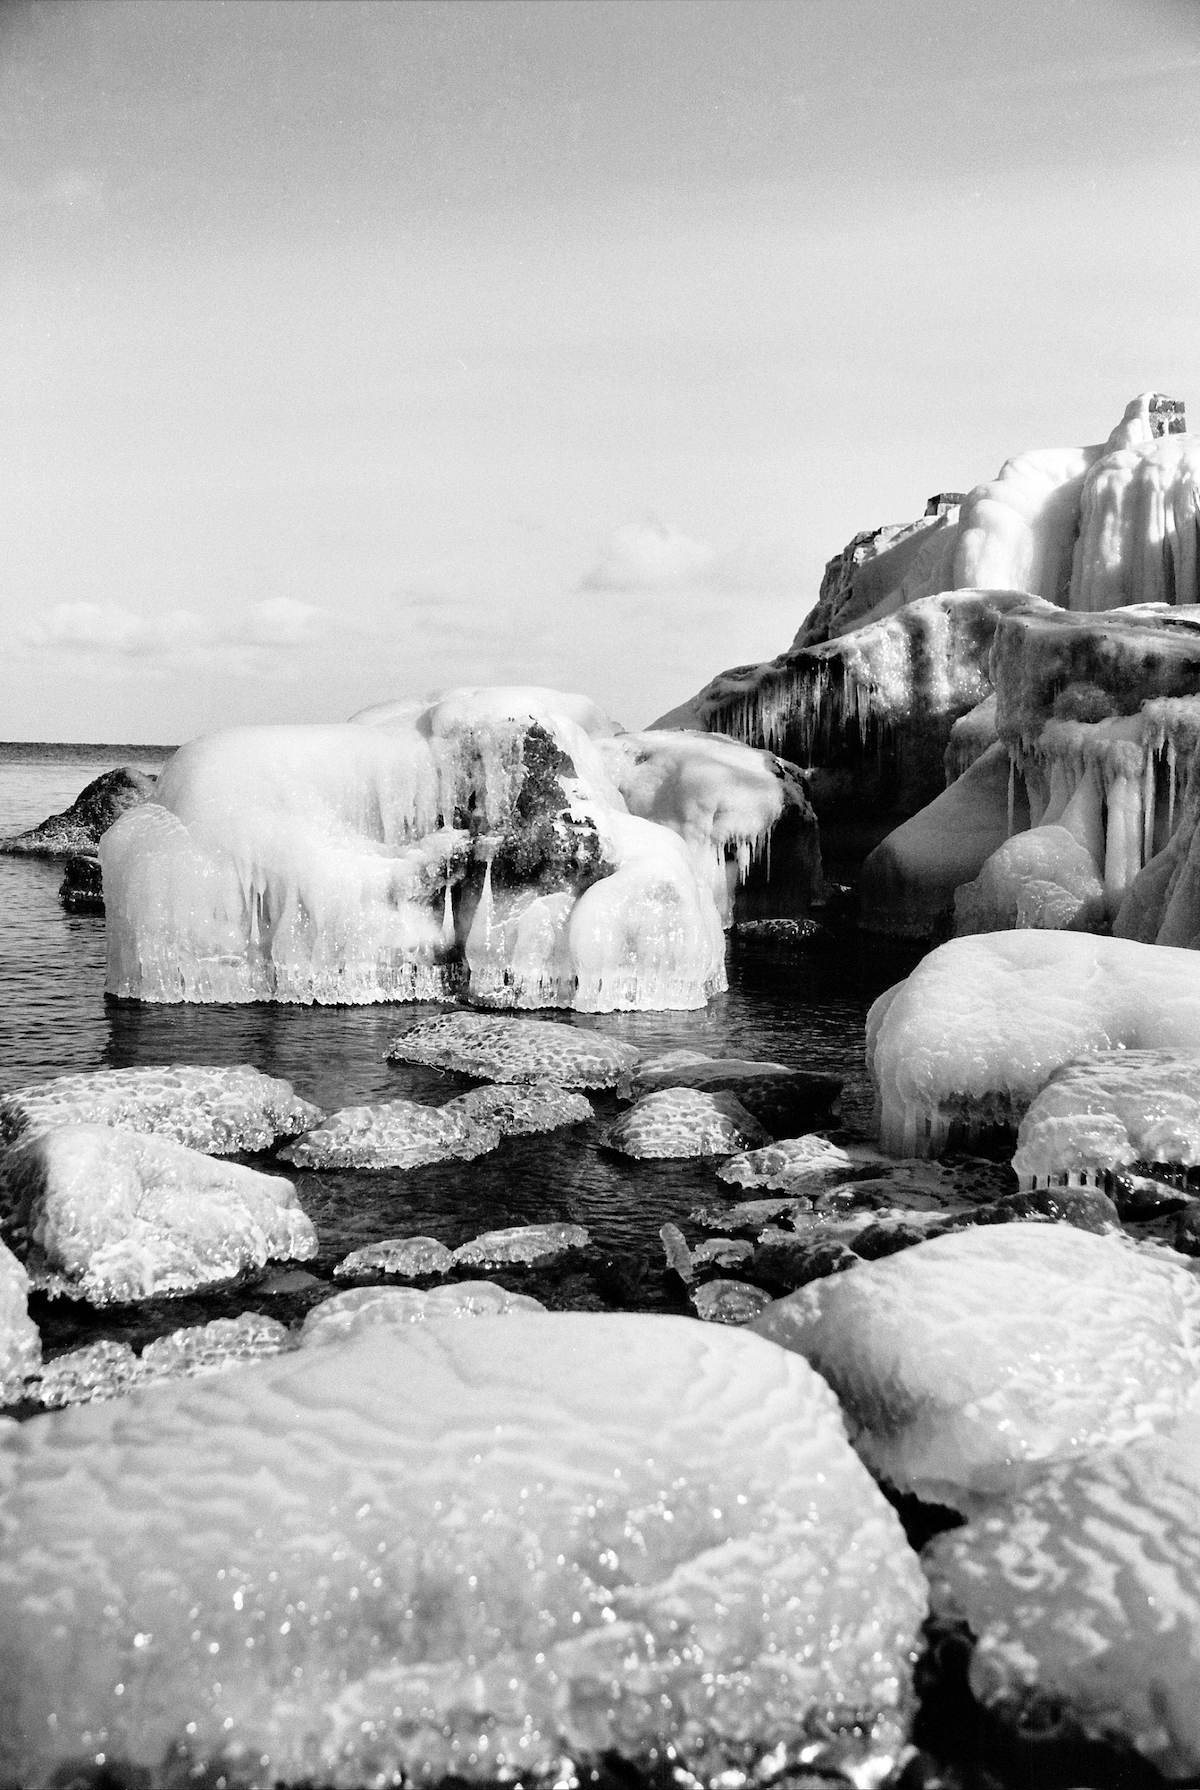 Black and White high contrast landscape of ice sitting in the ocean around salty rocks